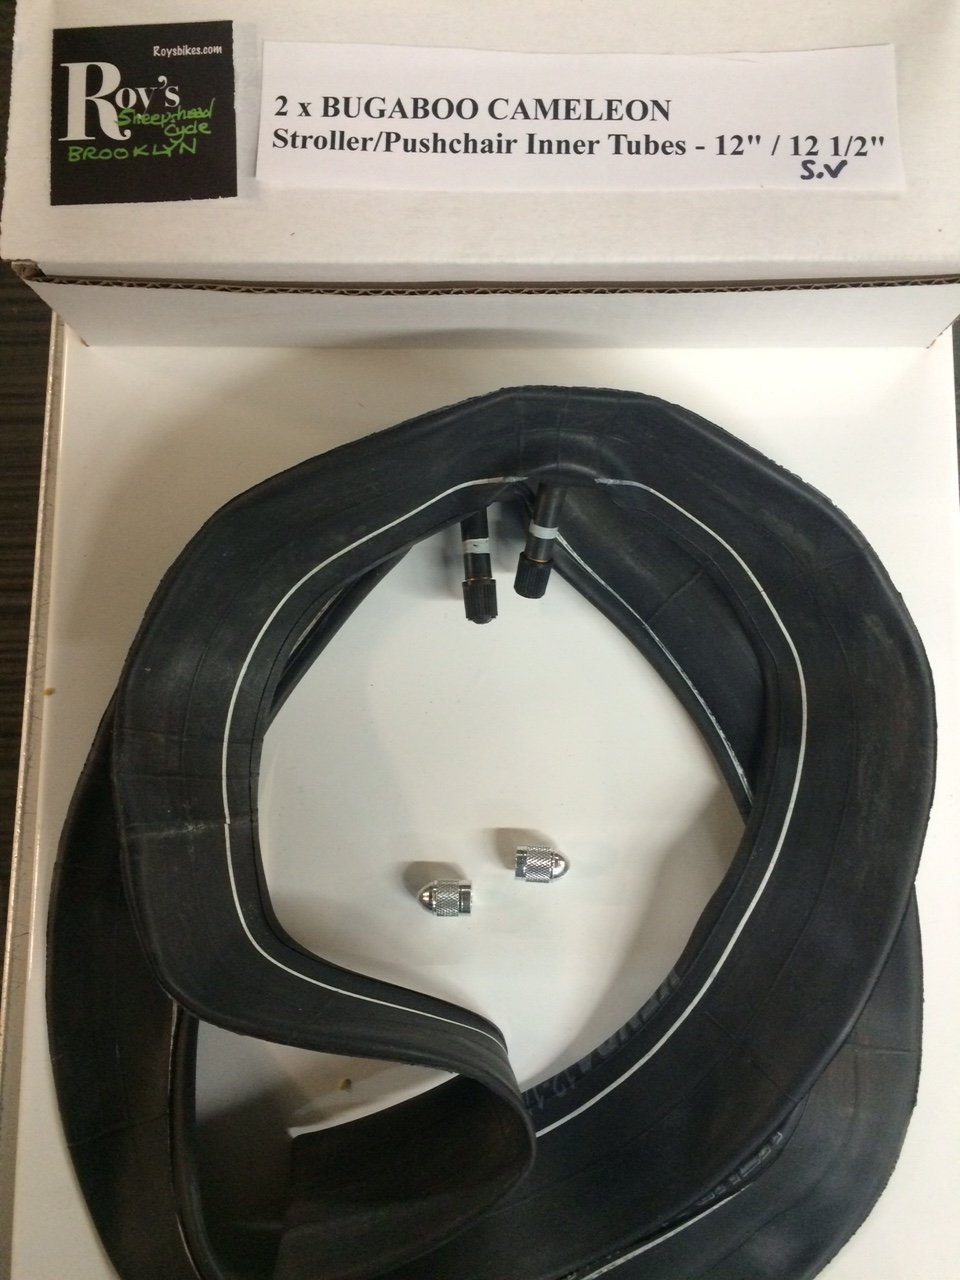 2 (Two) X Bugaboo Cameleon Stroller/pushchair Inner Tubes 12'' /12 1/2'' Straight Valve with Free Upgraded Valve Caps $4.99 Value